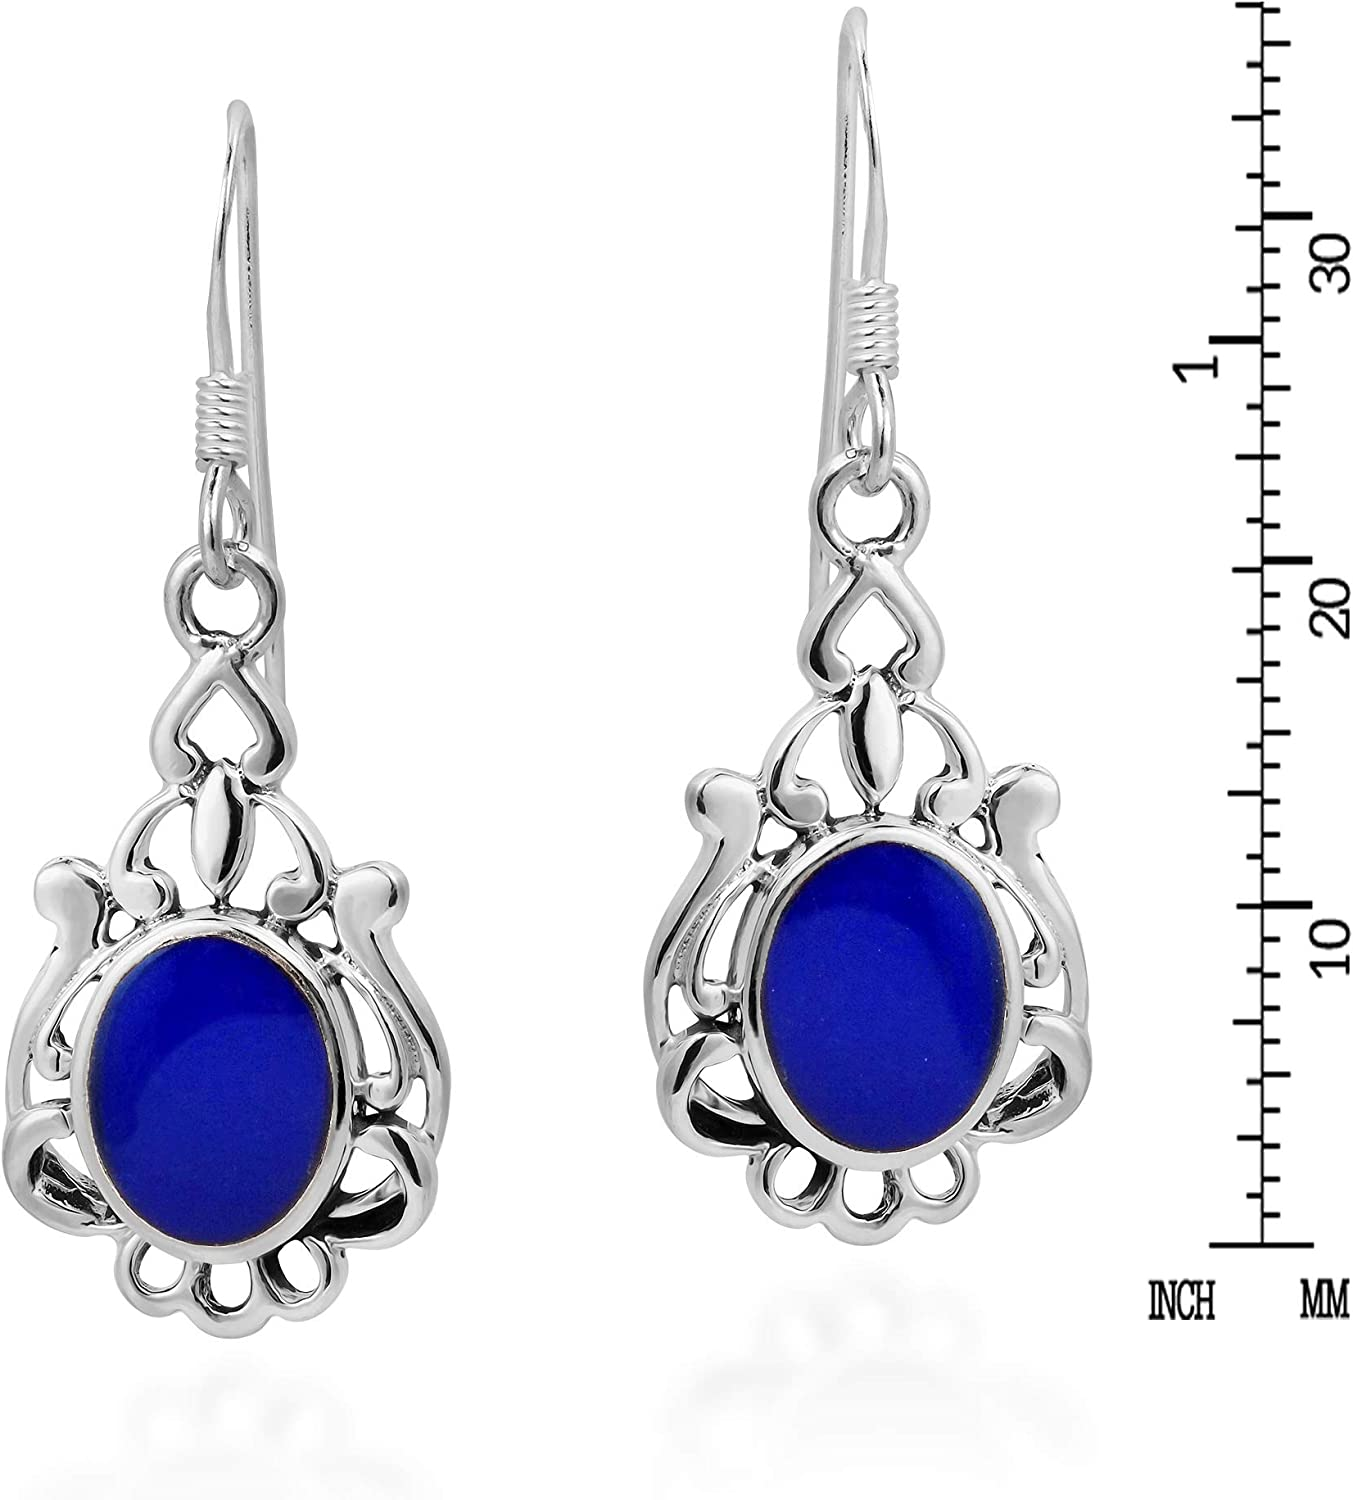 Lapis lazuli and sterling earrings